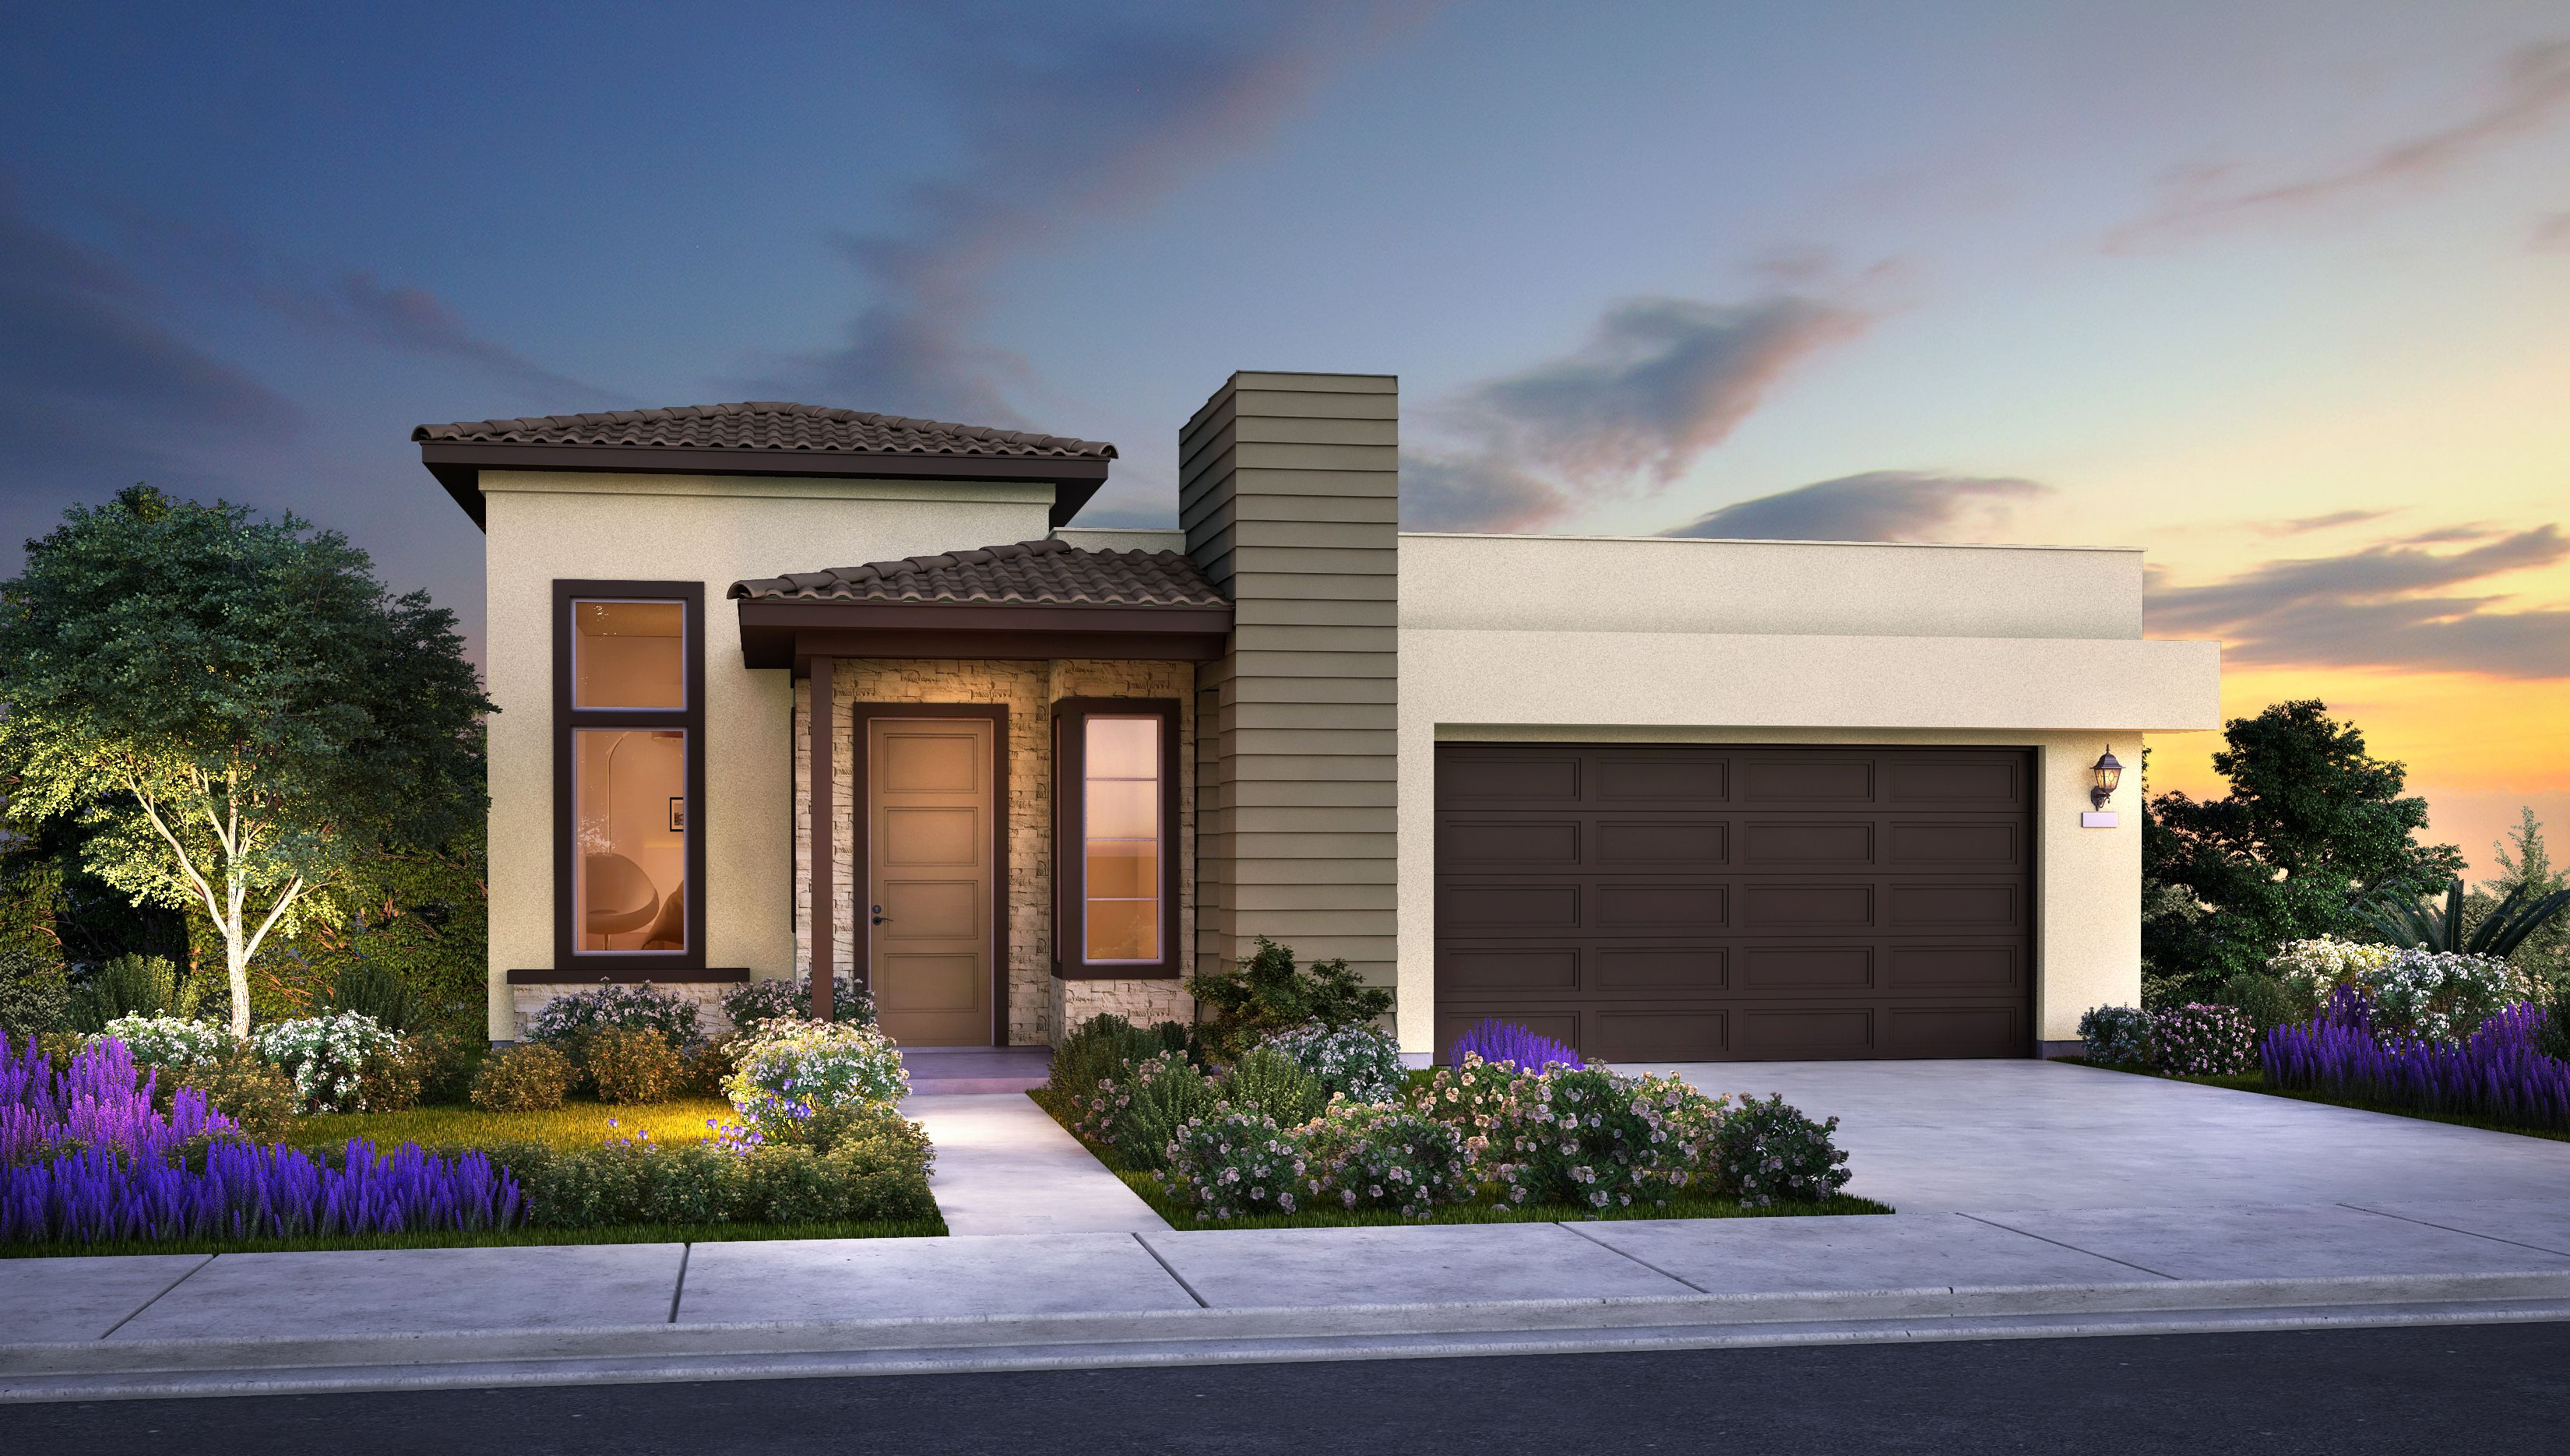 New construction homes plans in north hollywood ca 1073 homes newhomesource